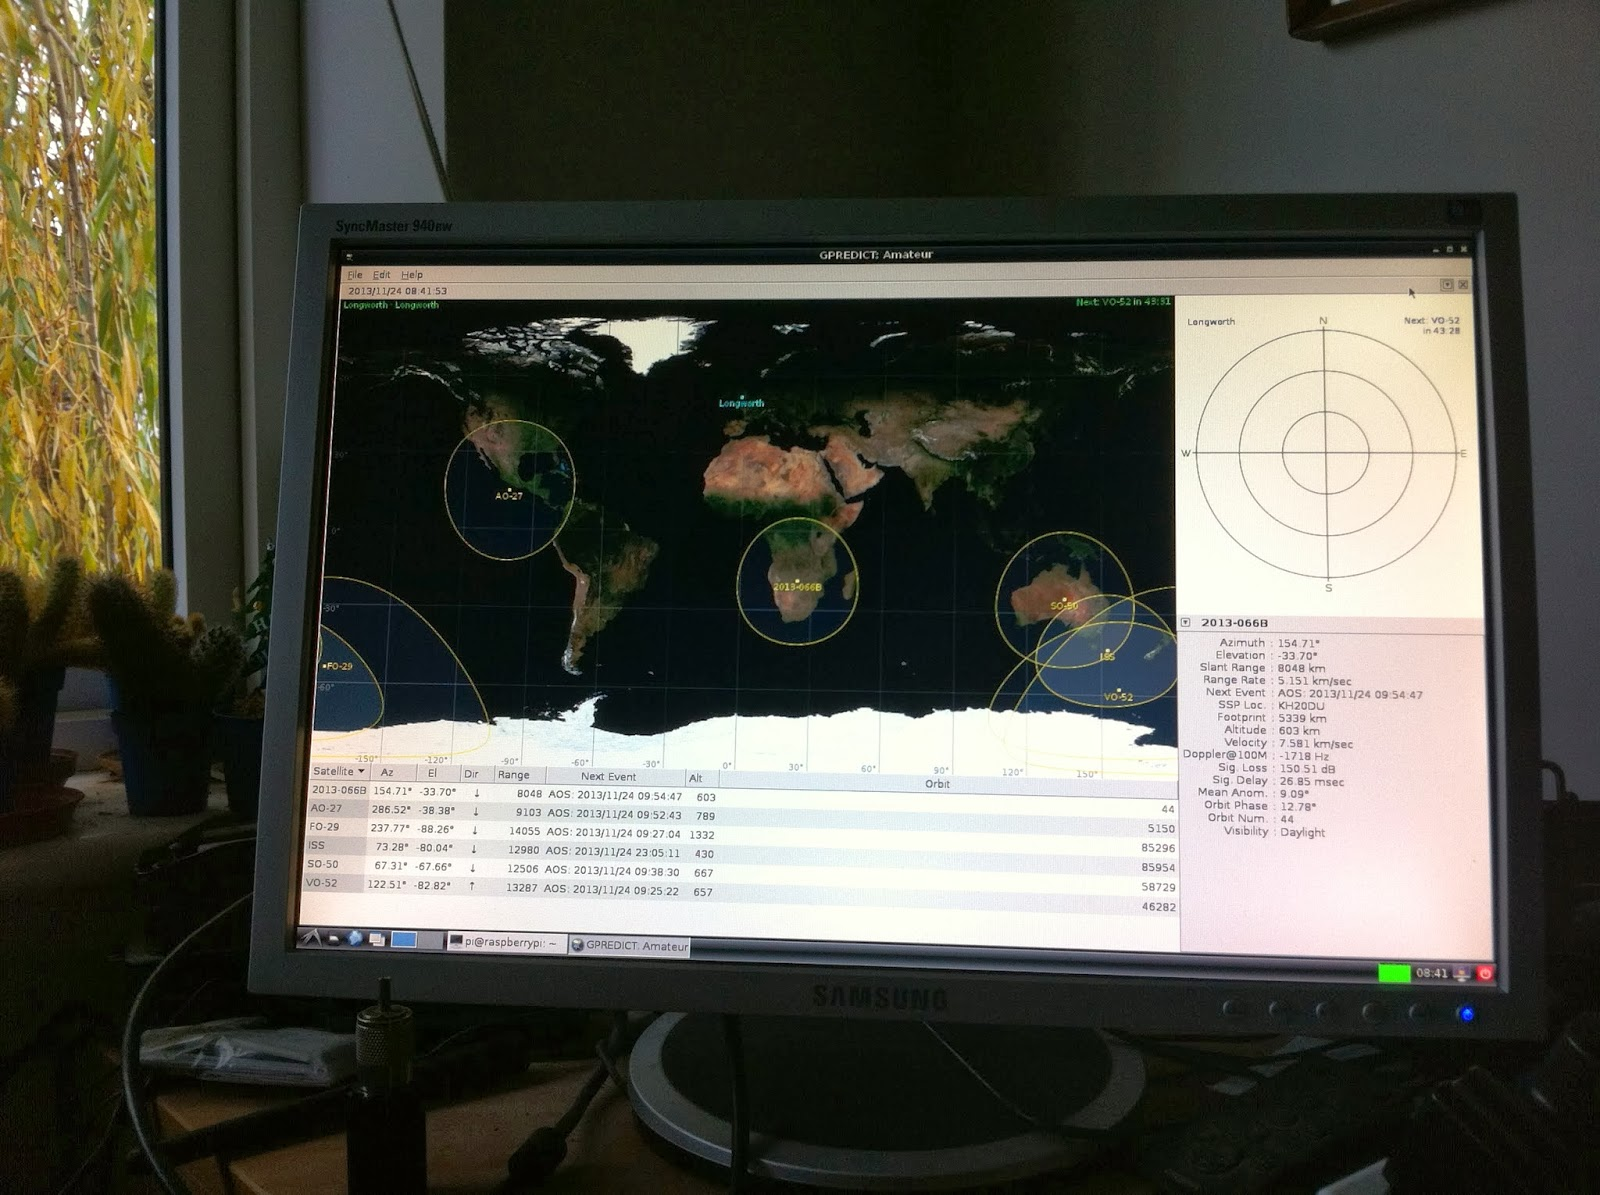 Using the Raspberry Pi and GPredict software to track